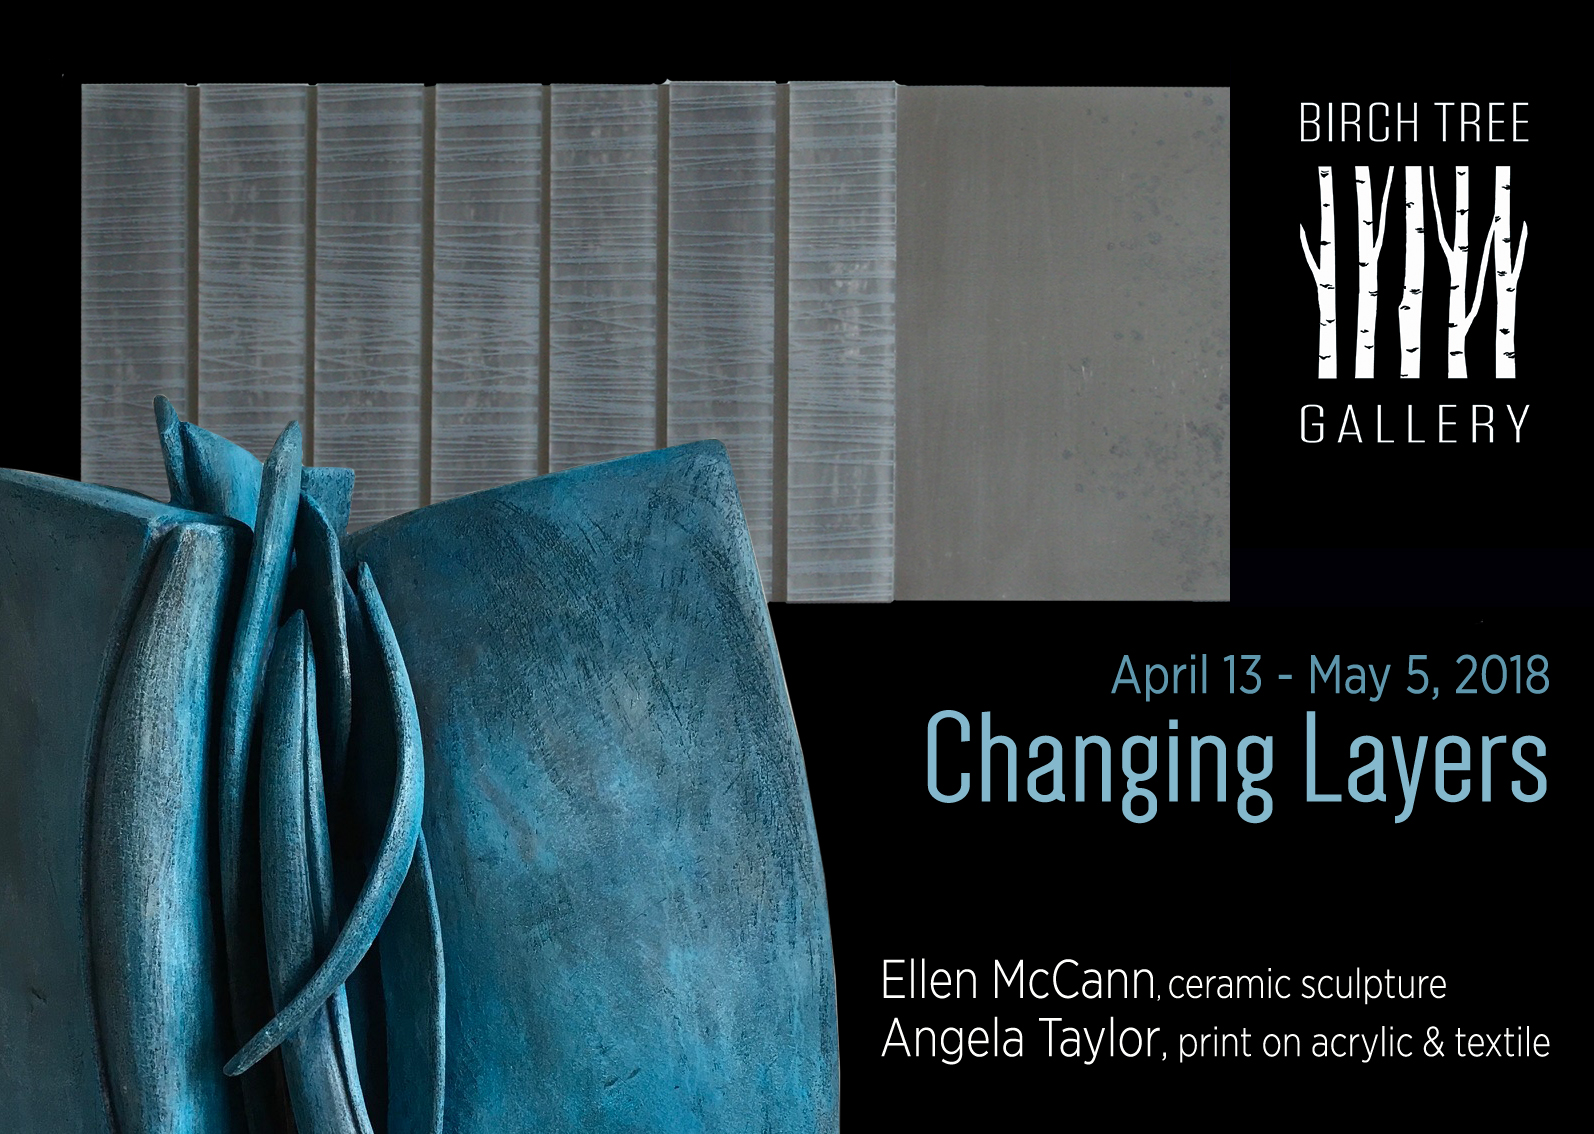 Birch Tree Gallery - Changing Layers